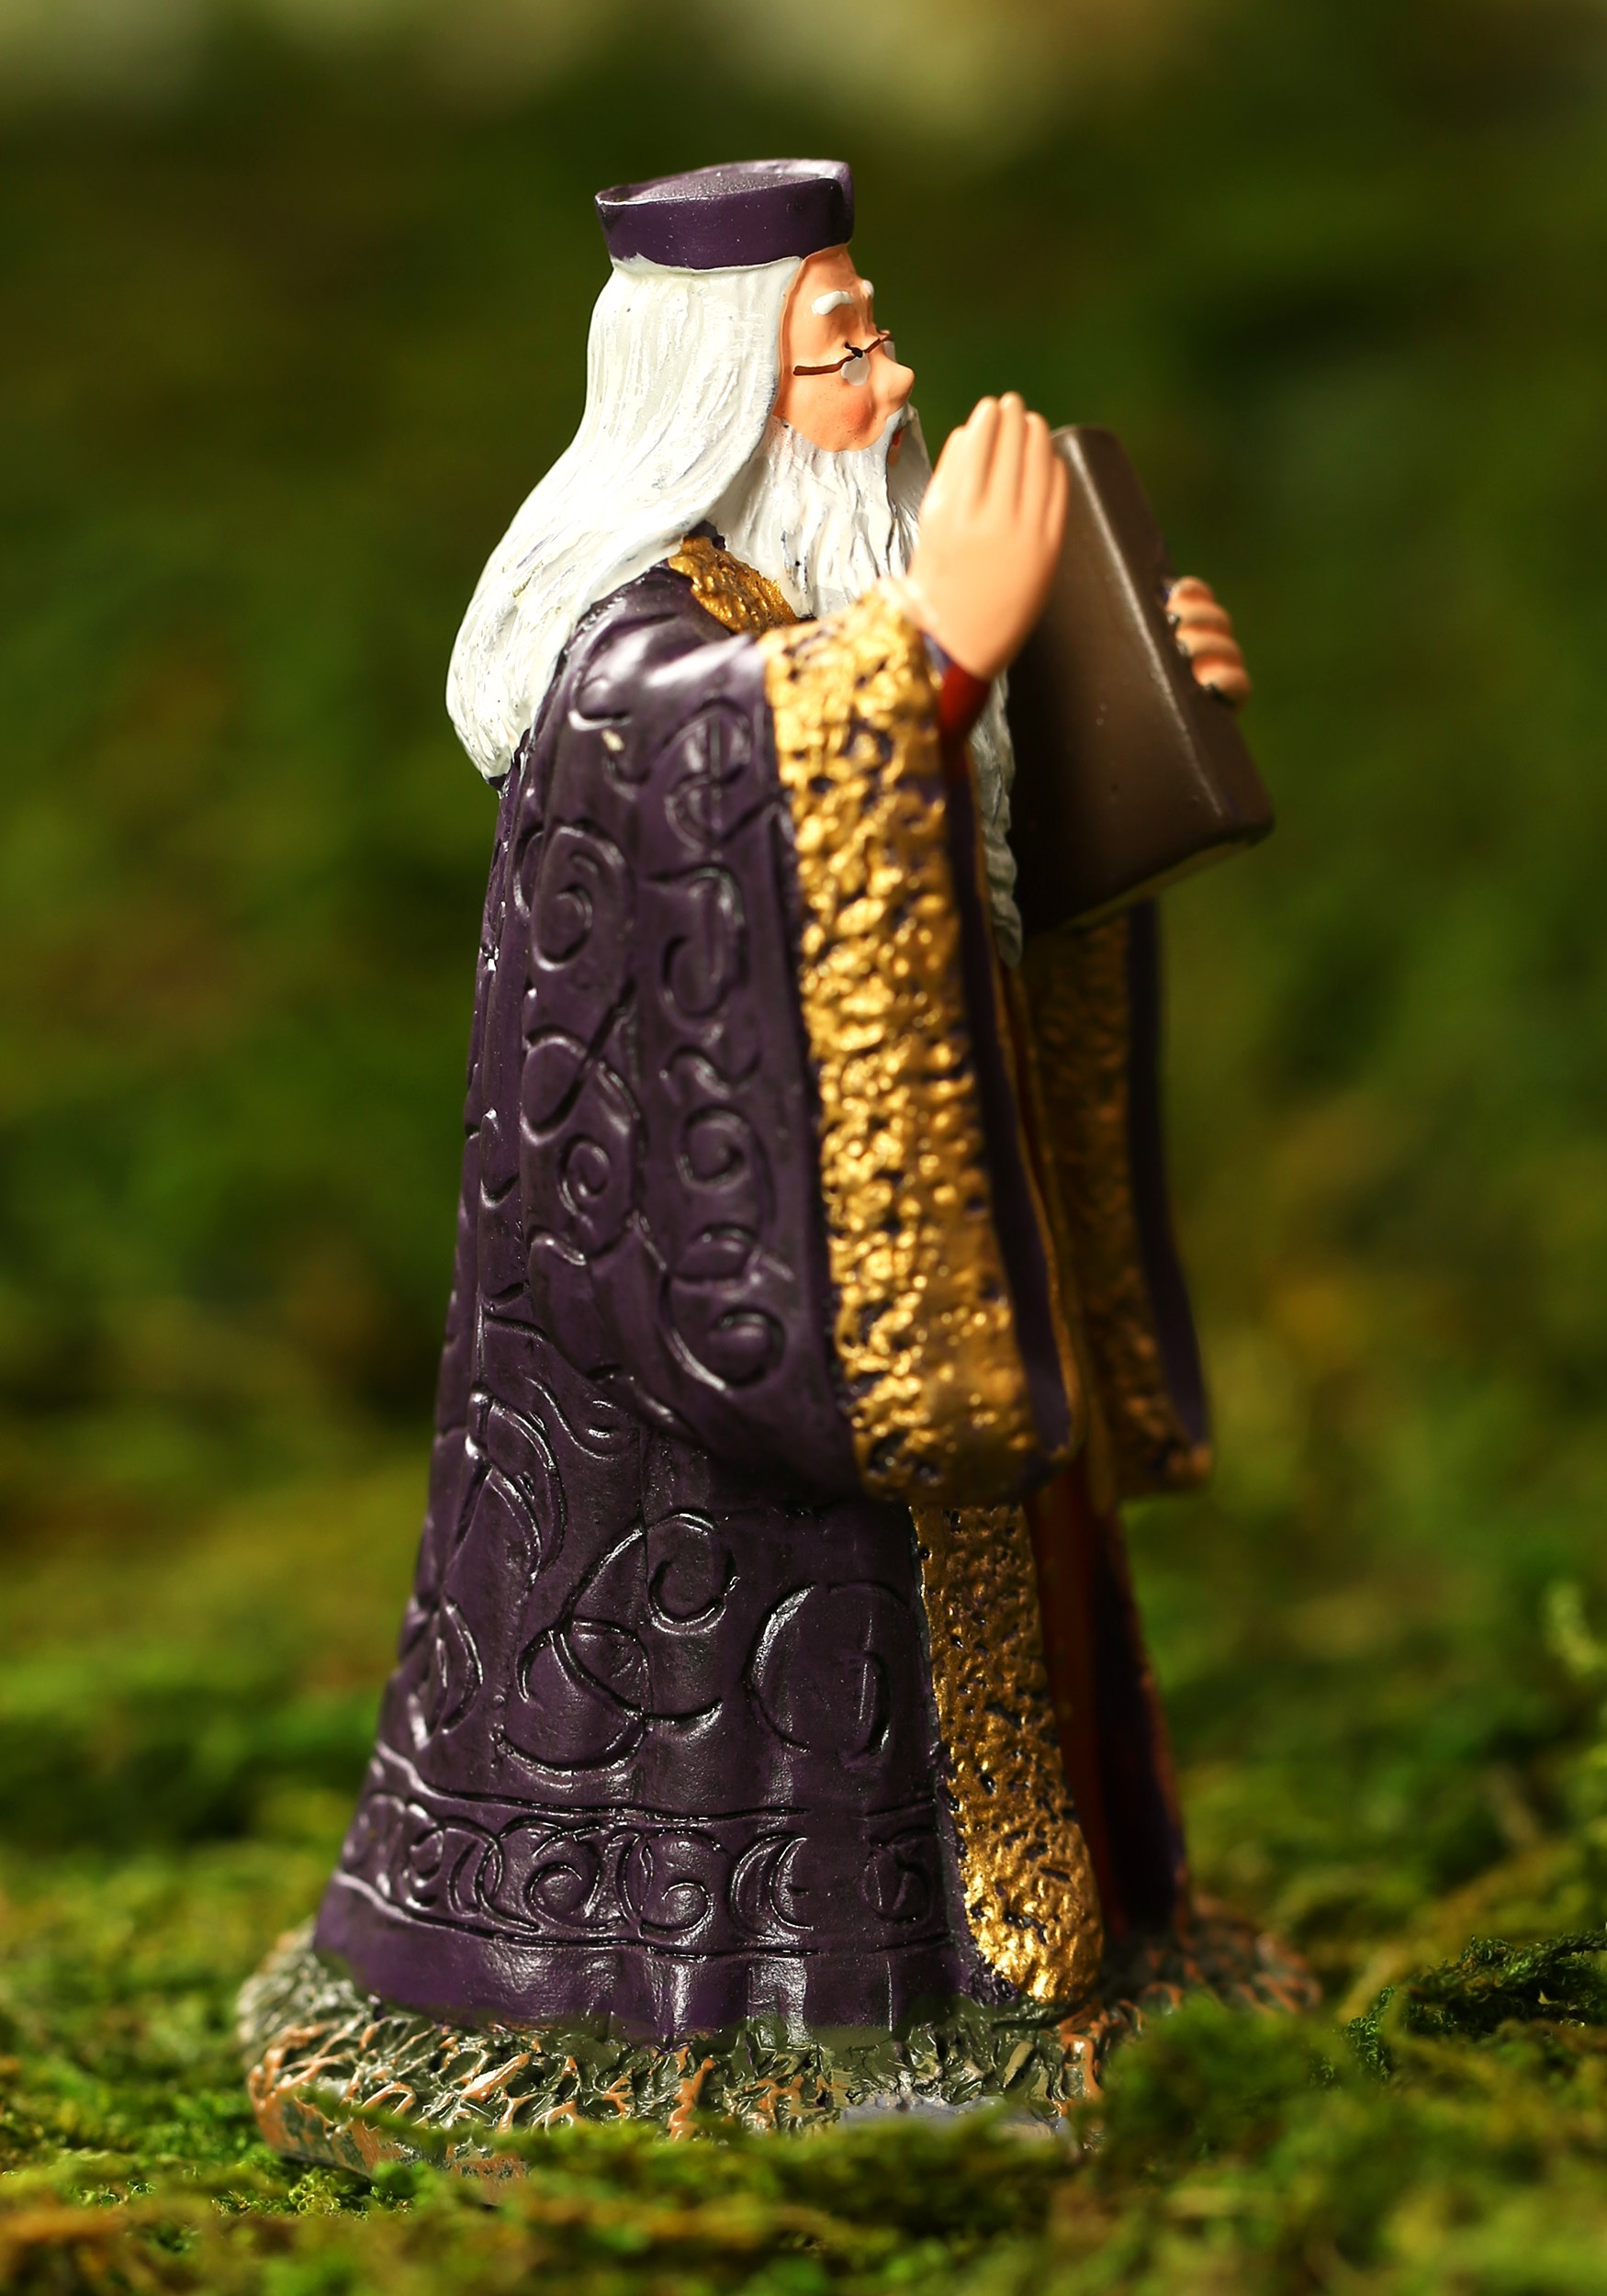 Dumbledore Figurines Harry Potter Village Harry and The Headmaster